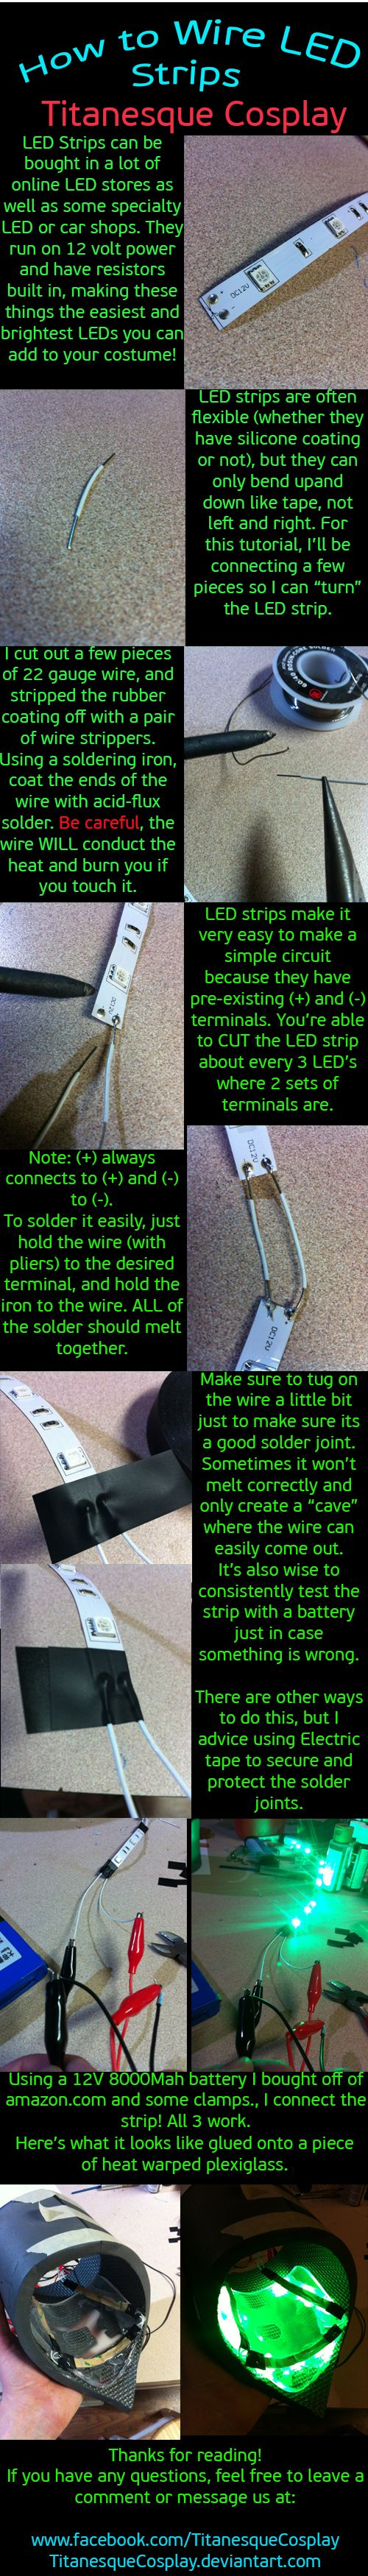 Led Strips: Led Strips Cosplay